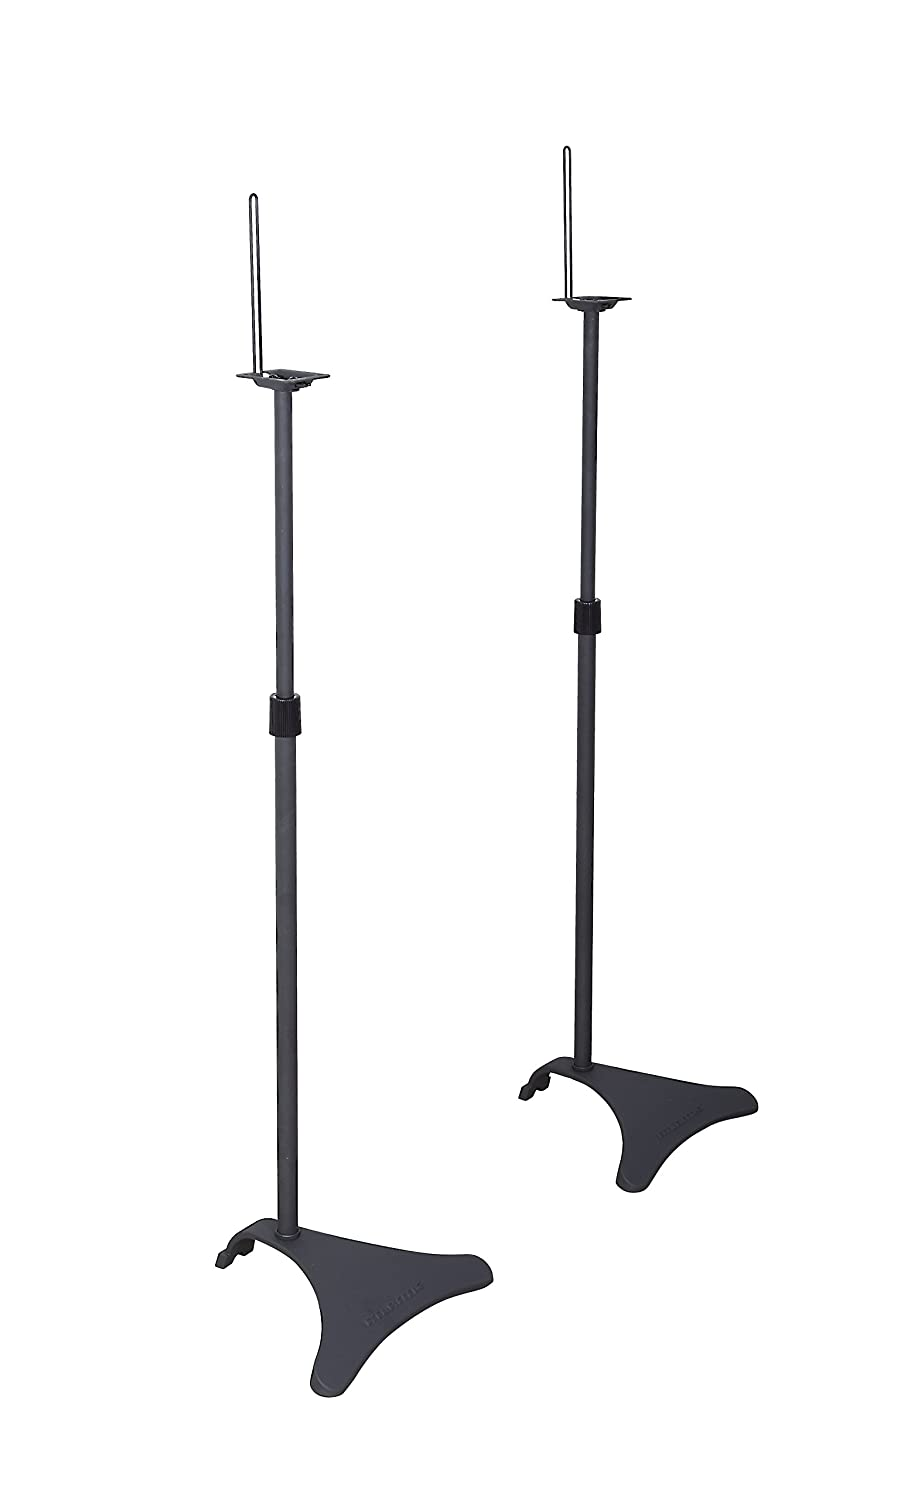 Atlantic Adjustable Height Speaker Stands - Set of 2 Holds Satellite Speakers, Adjustable Stand Height from 27 to 48 inch, Heavy Duty Powder Coated Aluminum with Wire Management PN77305018 in Black